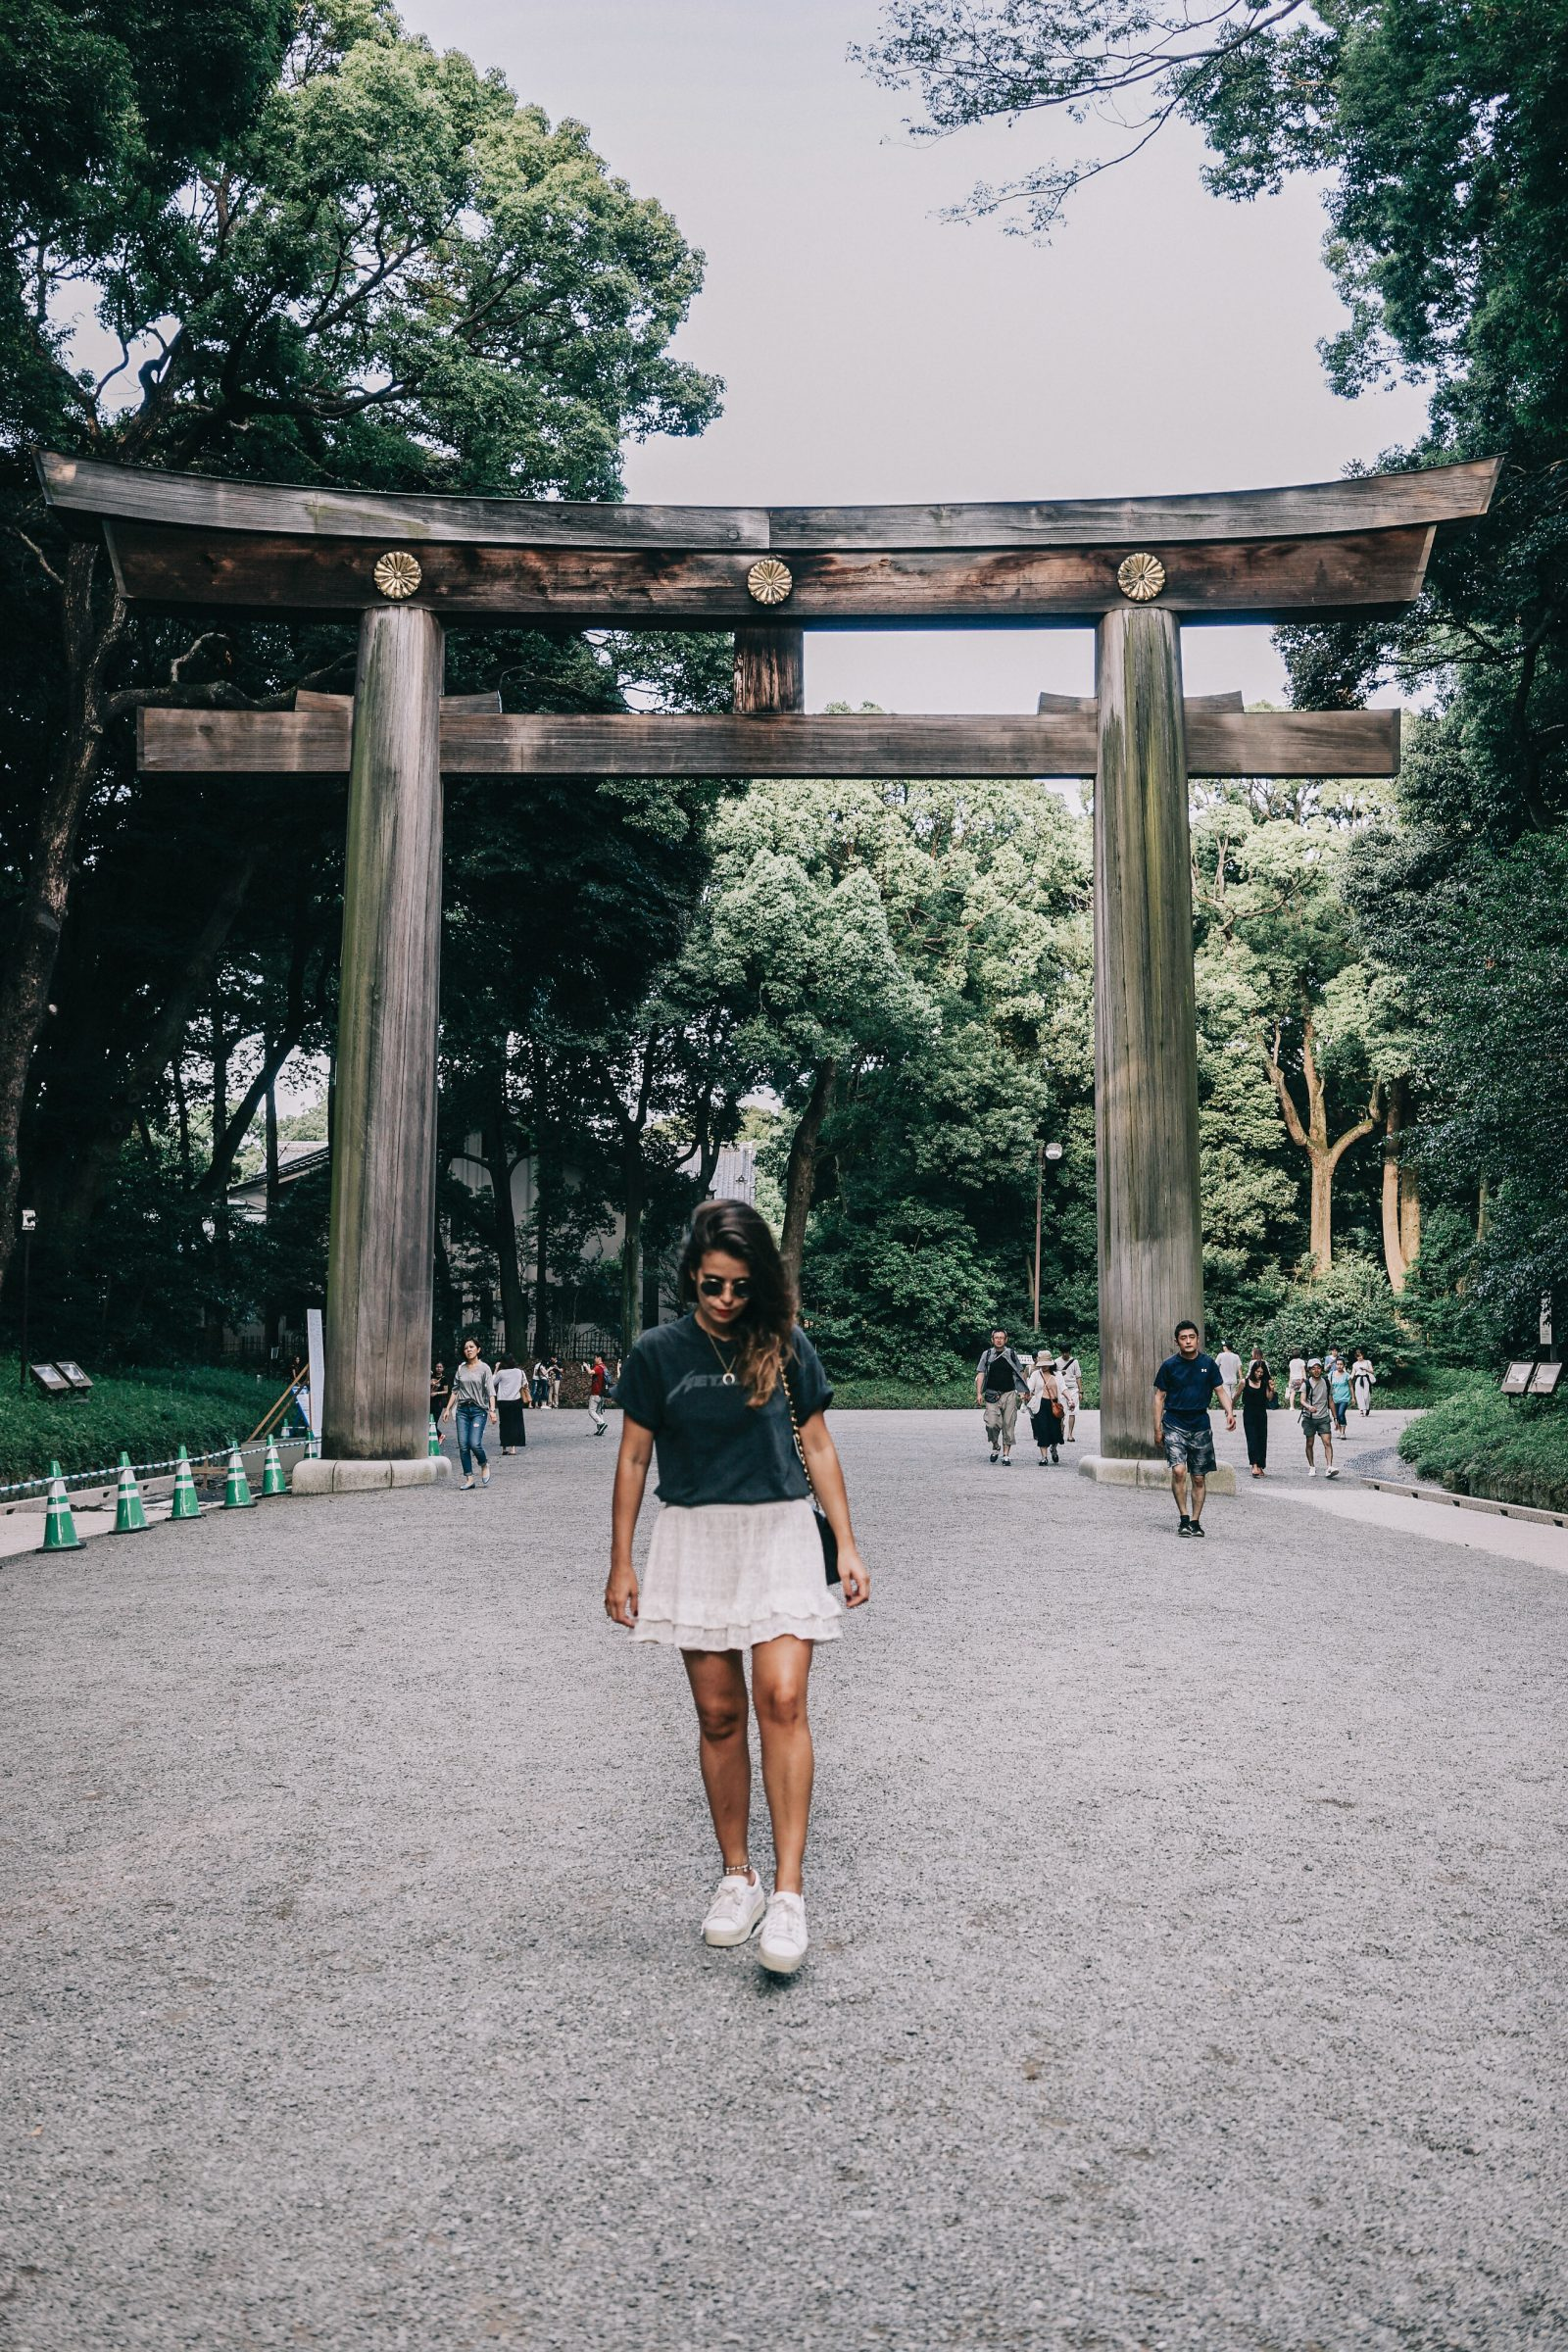 Tokyo_Travel_Guide-Outfit-Collage_Vintage-Street_Style-Top_Mettalica-Brandy_Melville-White_Skirt-Chanel_Vintage-Sneakers-61